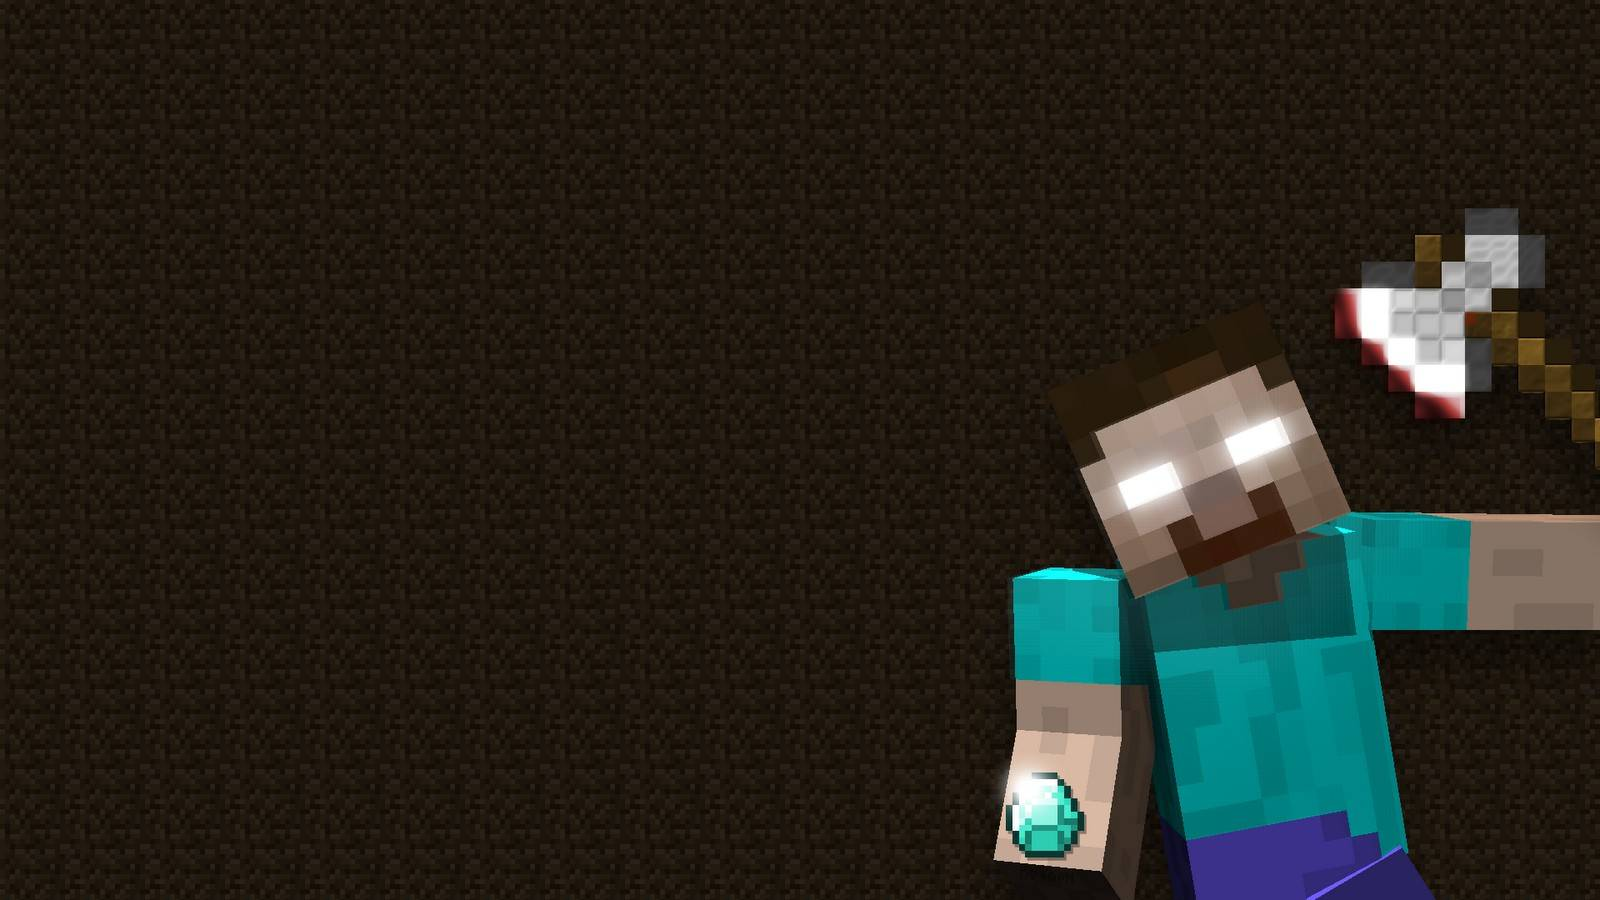 funny minecraft backgrounds